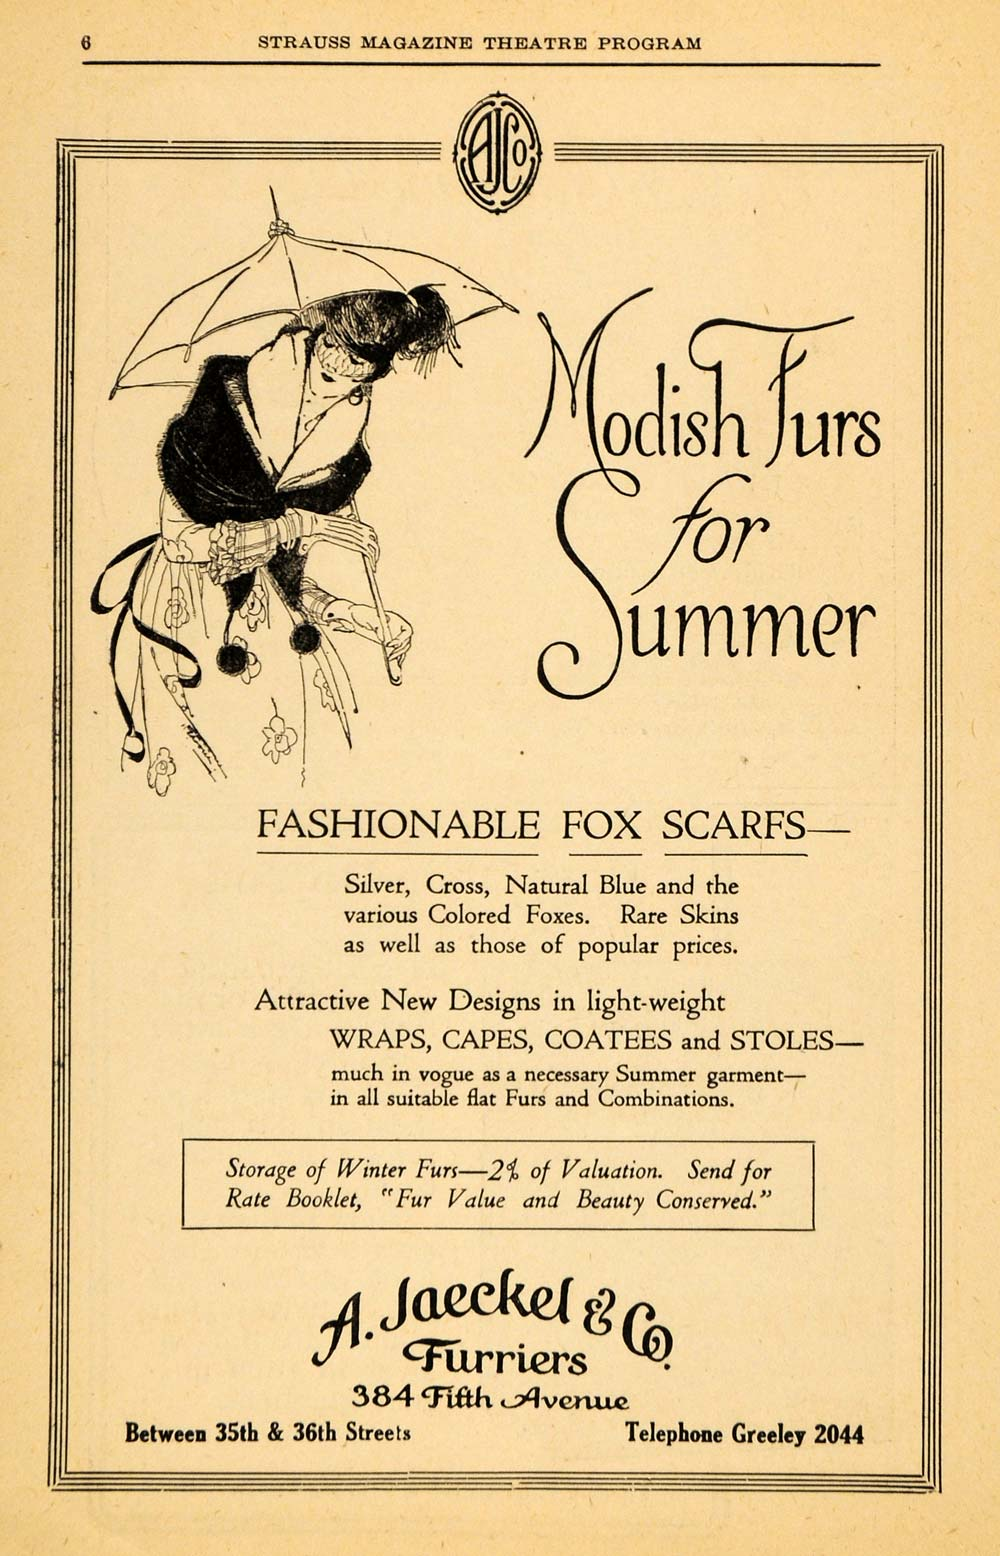 1918 Ad A Jaeckel Furriers Fur Cape Wrap Clothing Stole - ORIGINAL THR1